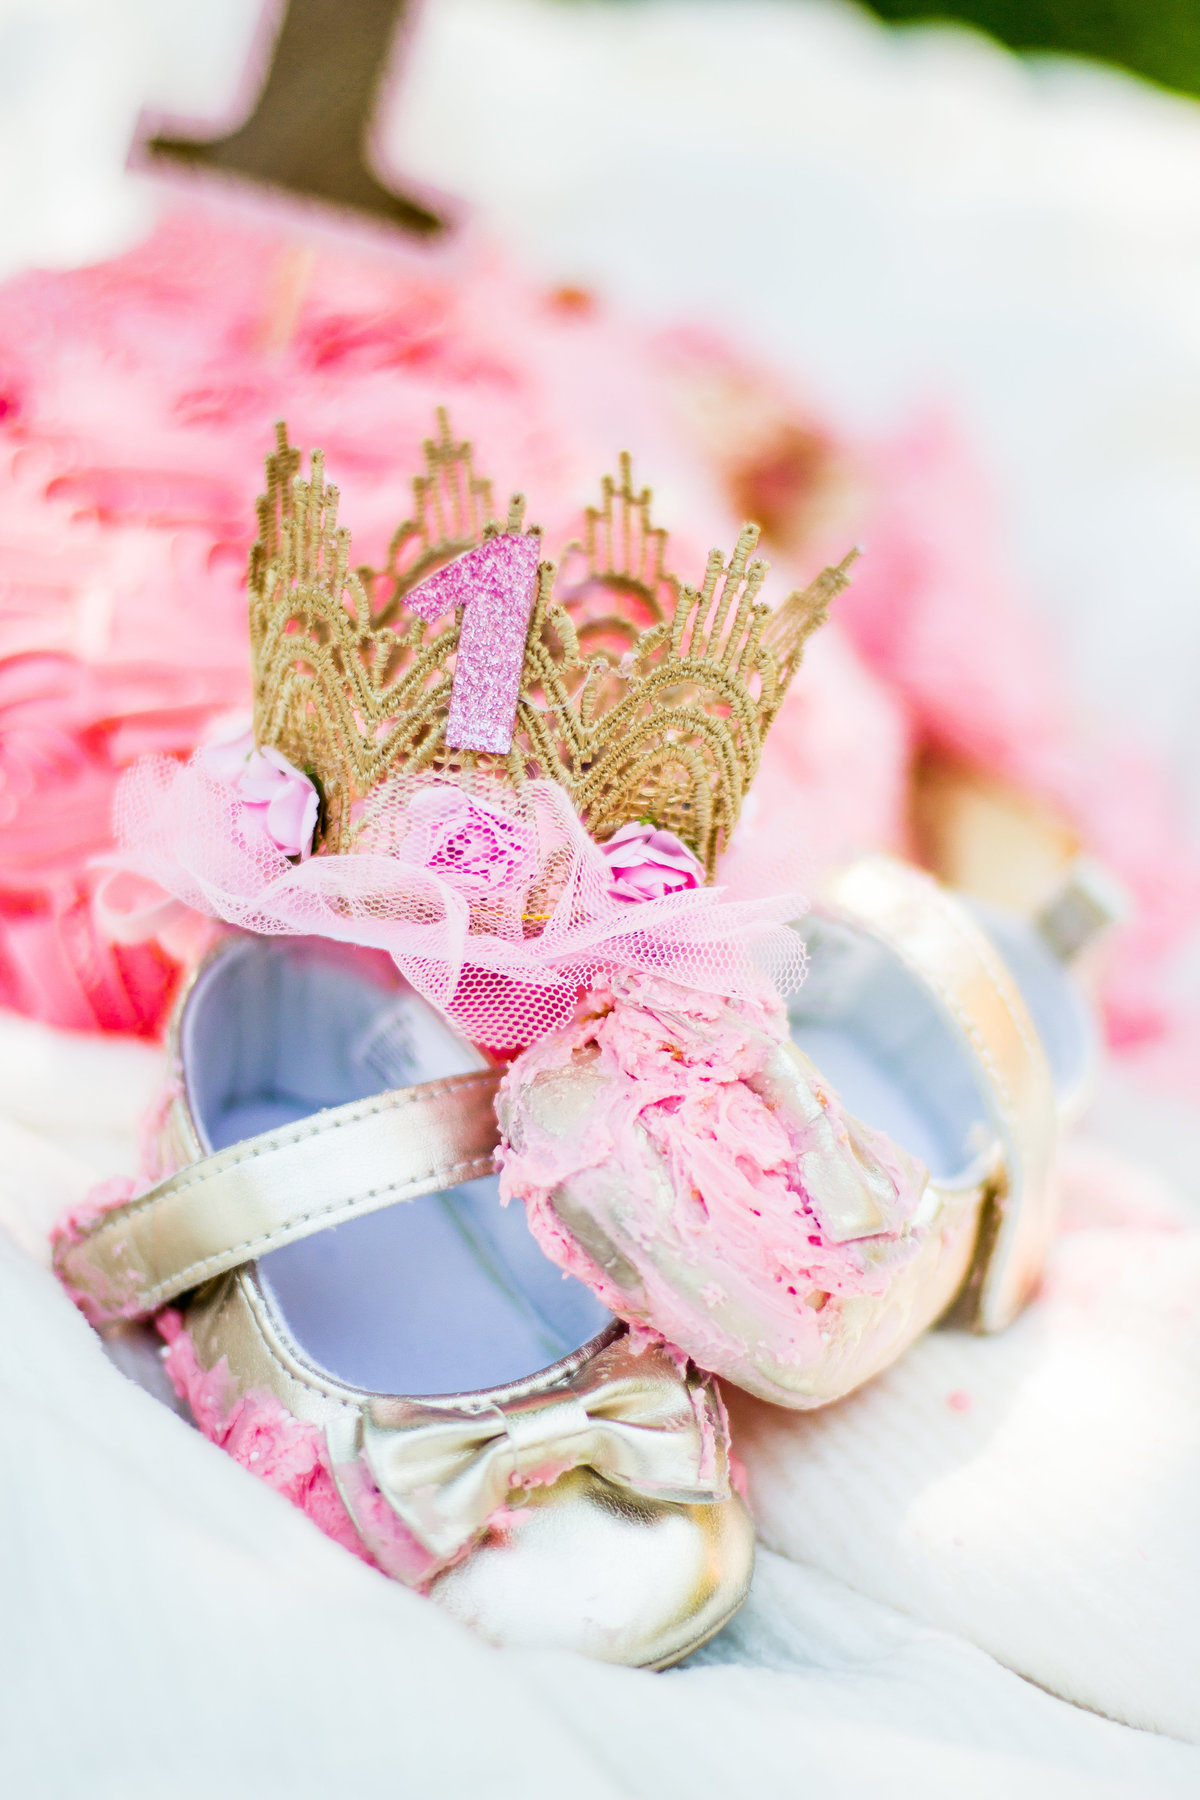 Gold and pink birthday, smash cake one-year old, girl, Garaman Park, Jackson, WY, baby crown, cake, mess, gold baby shoes